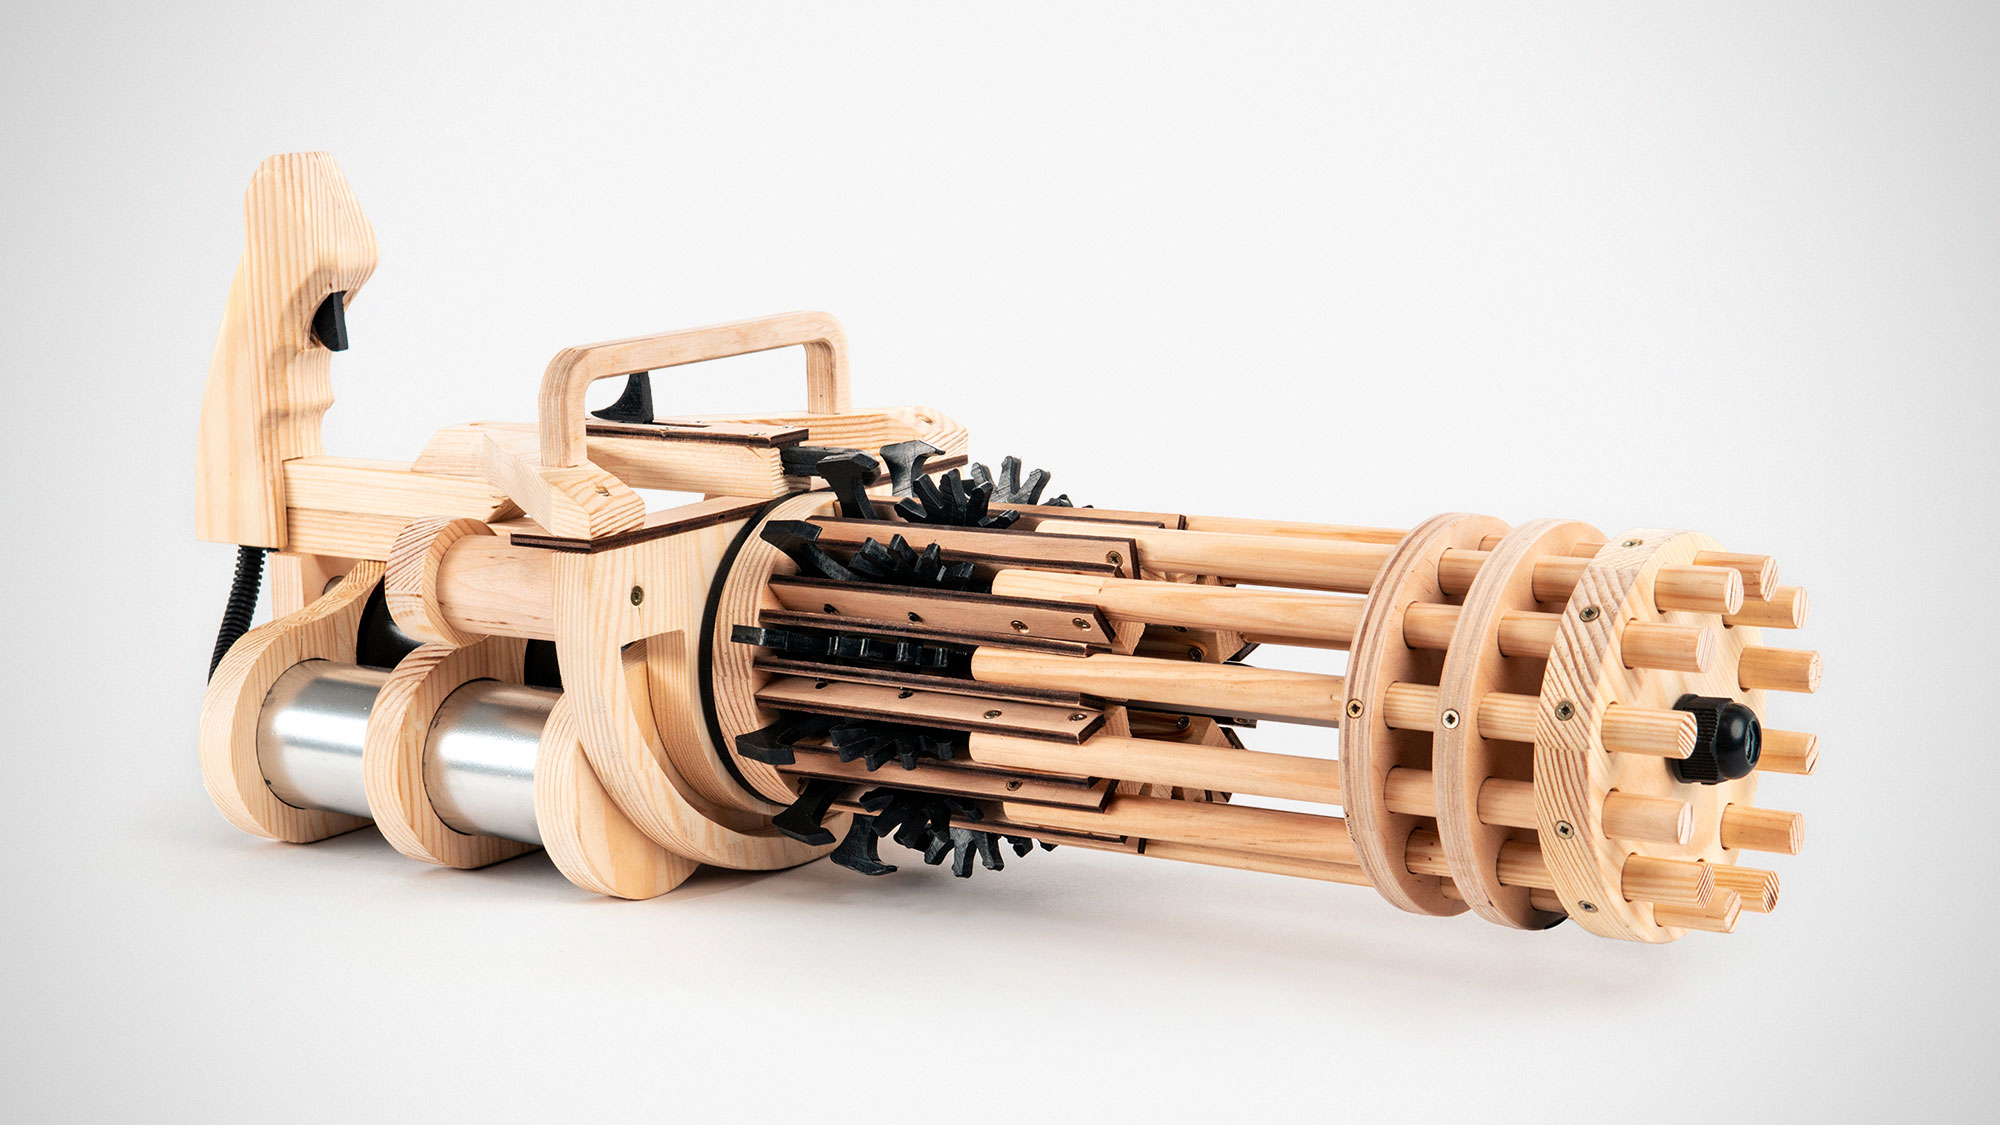 This Rubber Band Minigun Is Possibly The Most Accurate